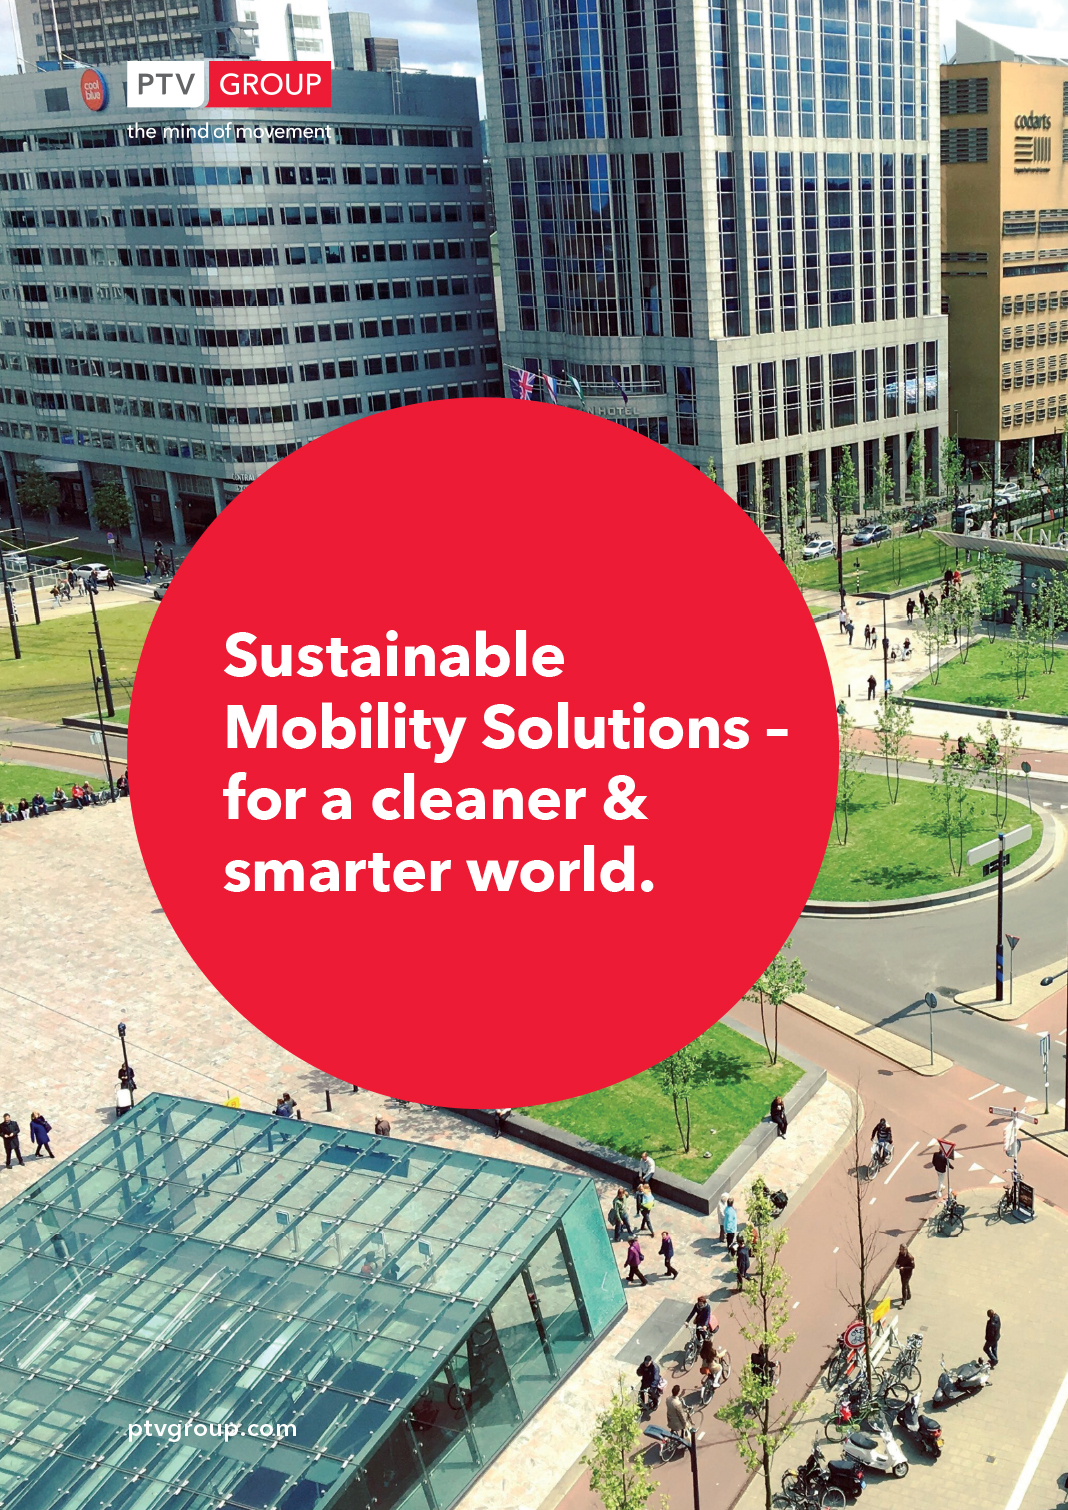 A new era of smarter, cleaner mobility